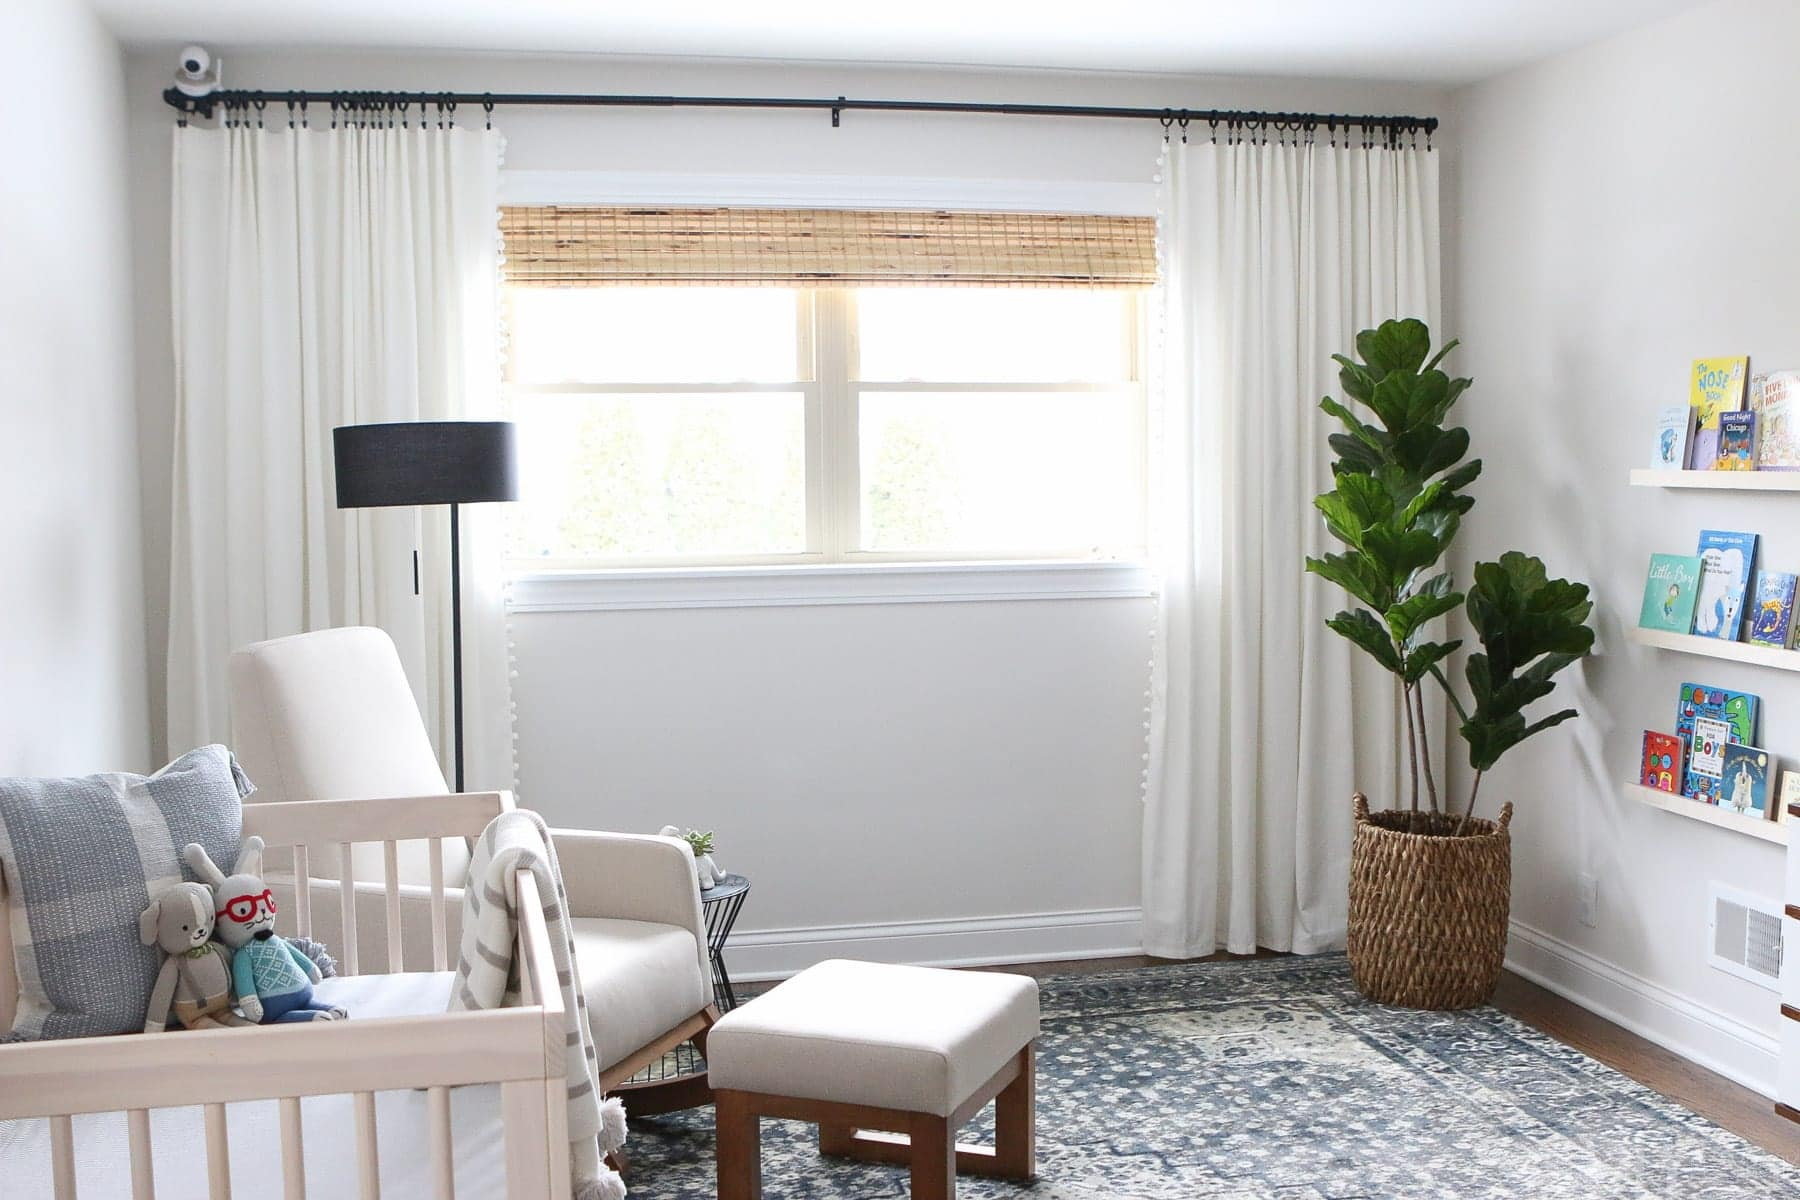 Hanging curtains and furnishing a neutral nursery